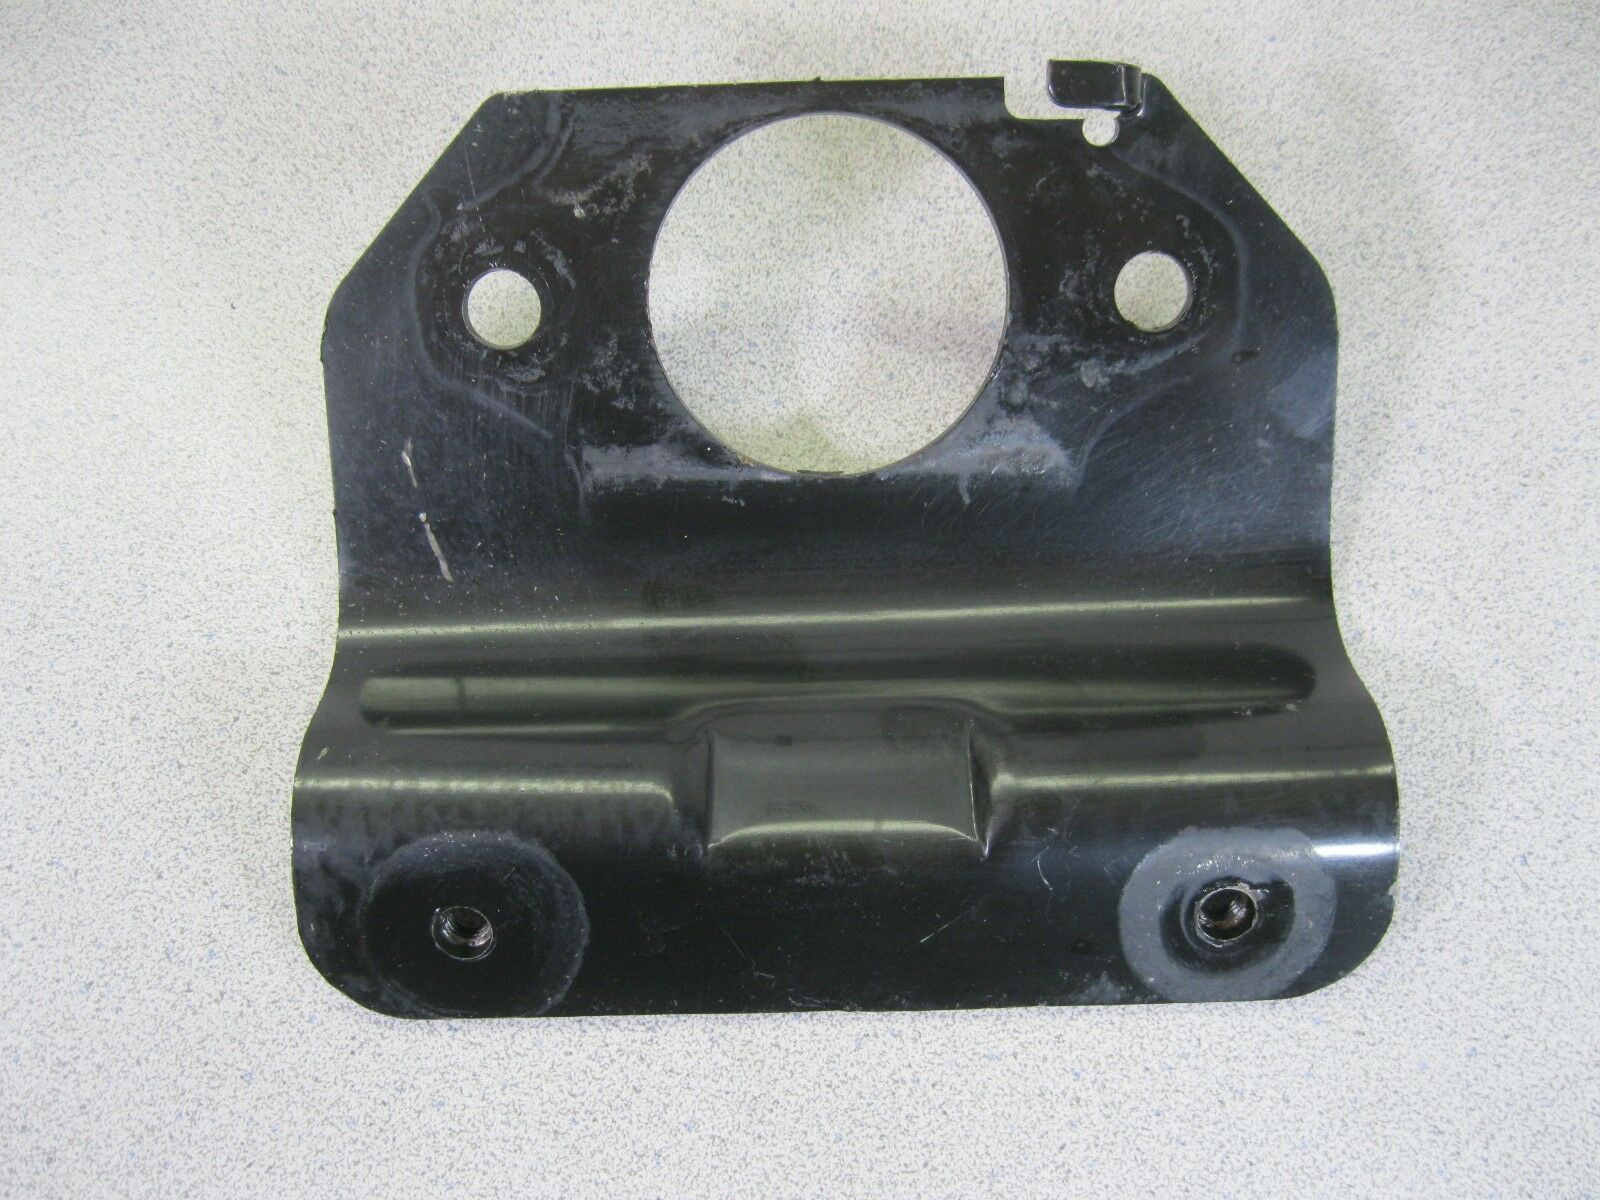 Used Nissan Manual Transmissions And Related Parts For Sale Page 4 1997 Sentra Gxe Hardbody D21 Transmission Mount Bracket 24l Ka24e Cyl Oem